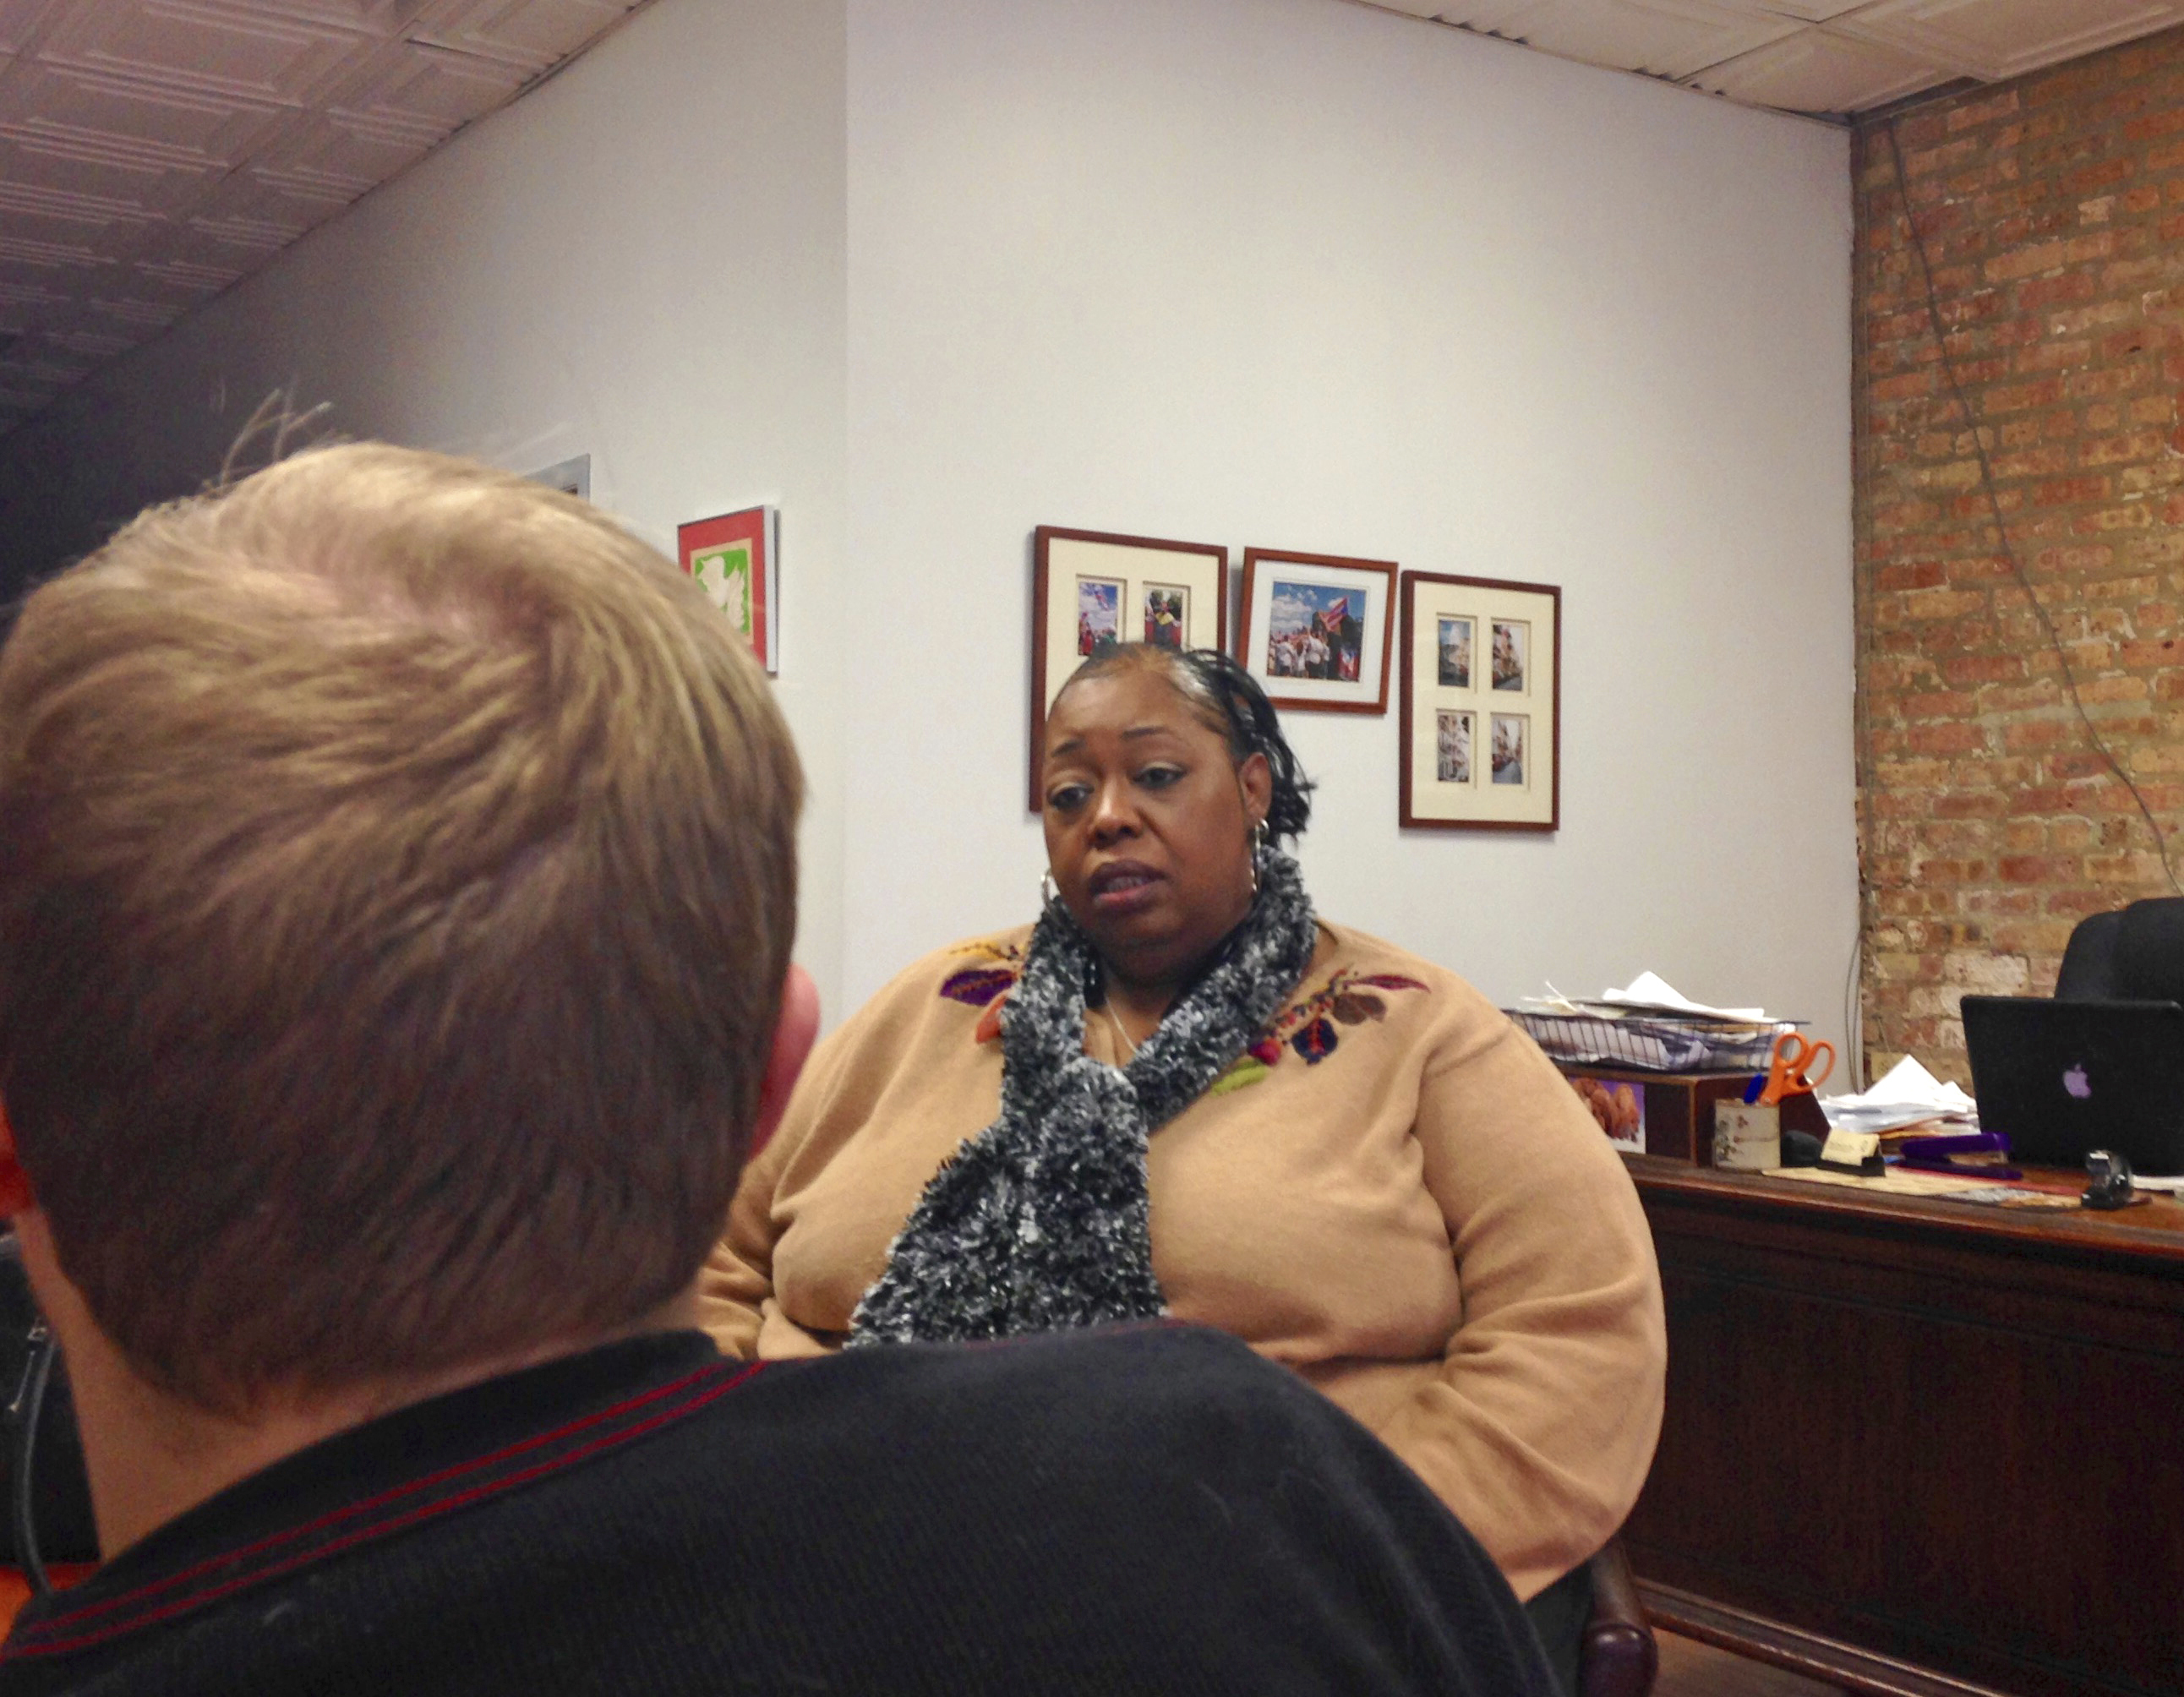 Lavette Mayes talks with Max Suchan, who co-founded the Chicago Community Bond Fund in Chicago, in December 2016. Mayes, was arrested for the first time after she got into a fight with her mother-in-law, spent more than a year in Cook County Jail unable to come up with $25,000 needed to post bond. (Sara Burnett/AP)